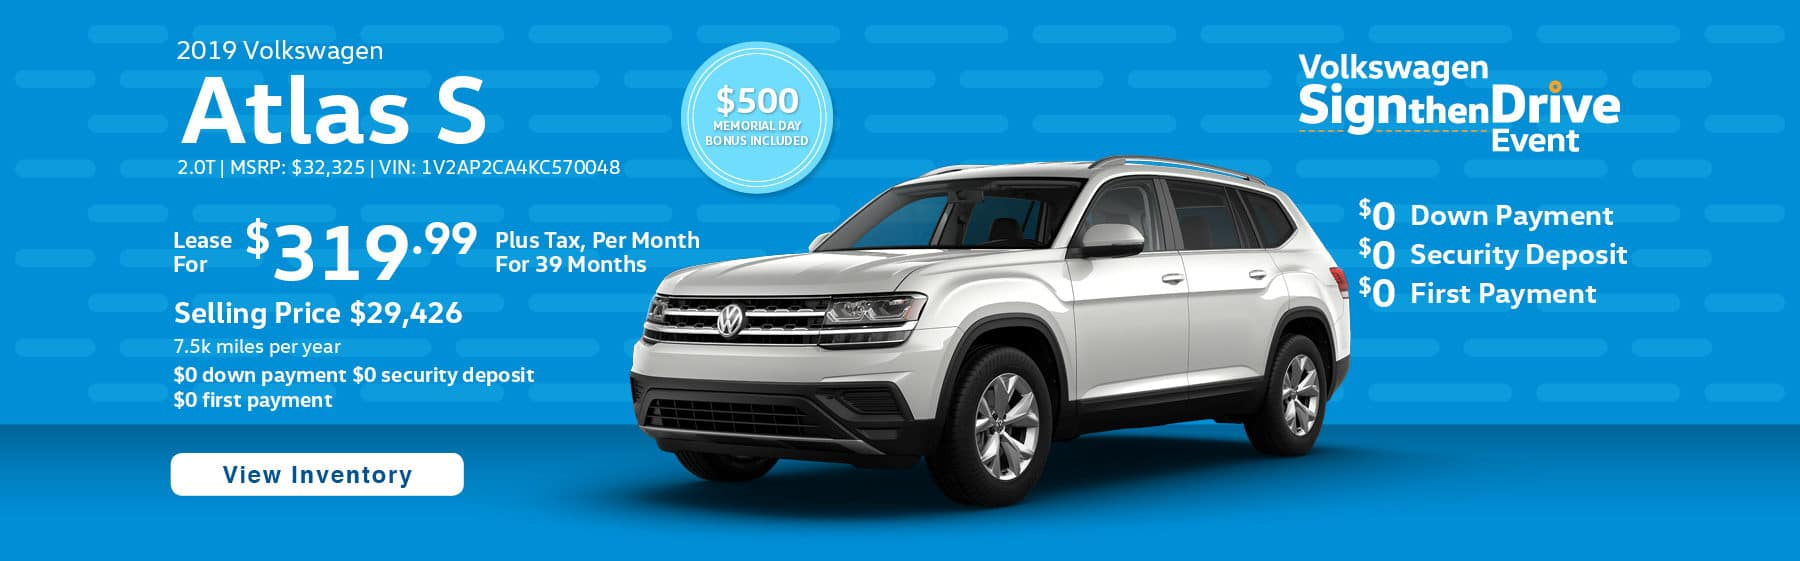 Lease the 2019 Atlas 2.0T S for $319.99 per month, plus tax for 39 months.